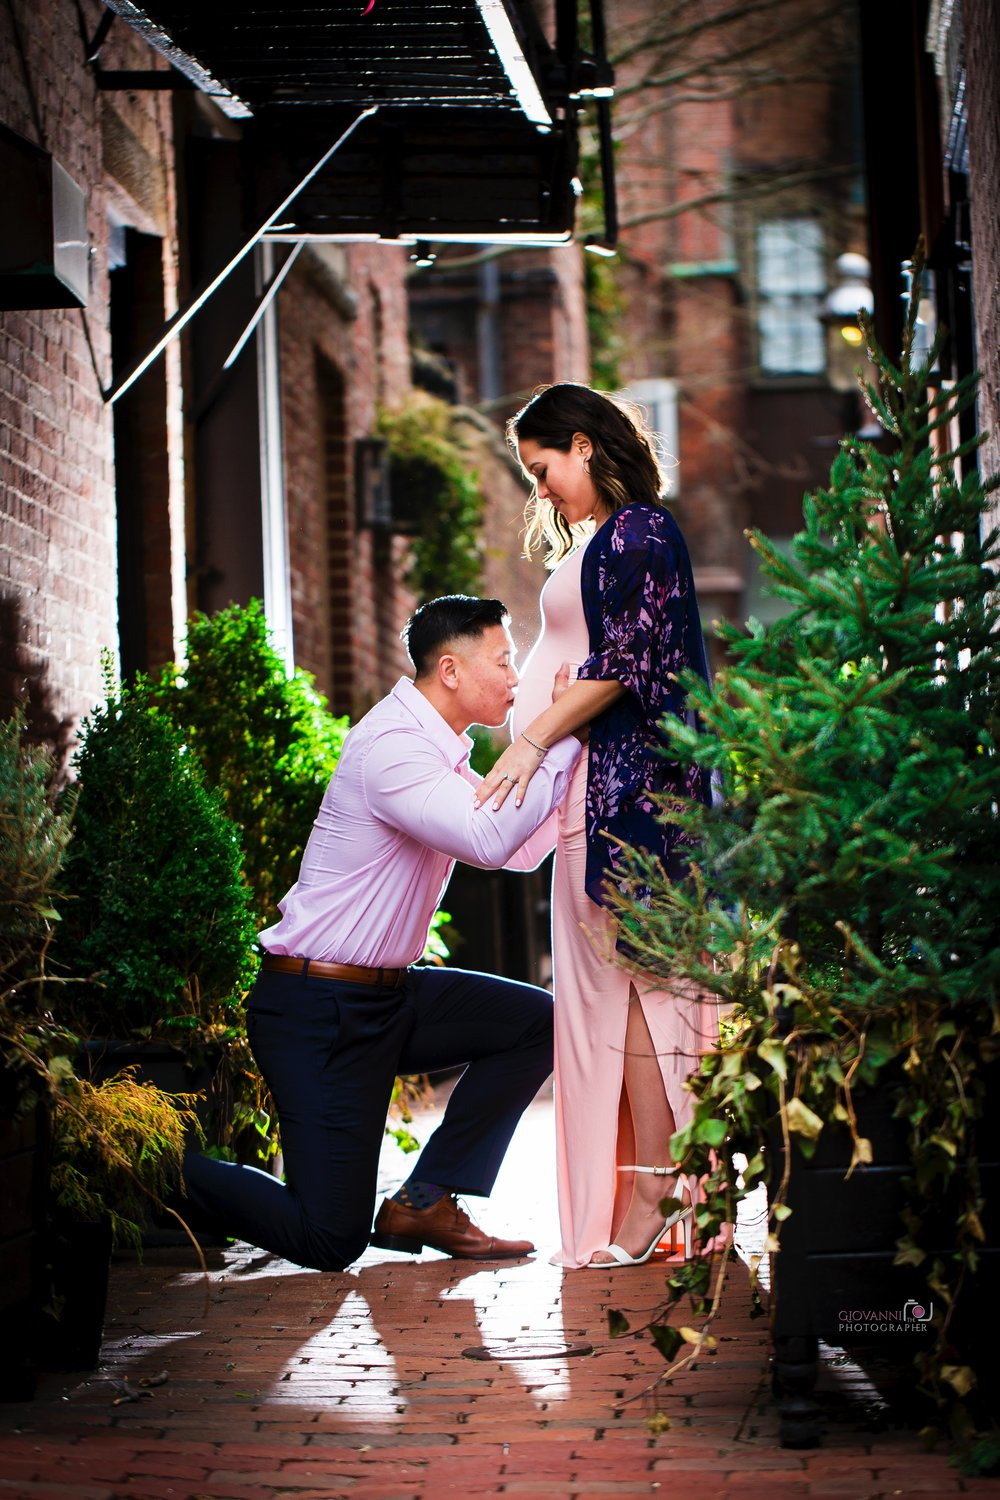 8C2A2446 Giovanni The Photographer Boston Marternity Photography Maryann and Steven - Beacon Hill - Acorn Street Cobblestone St 03-04-18 WM35.jpg